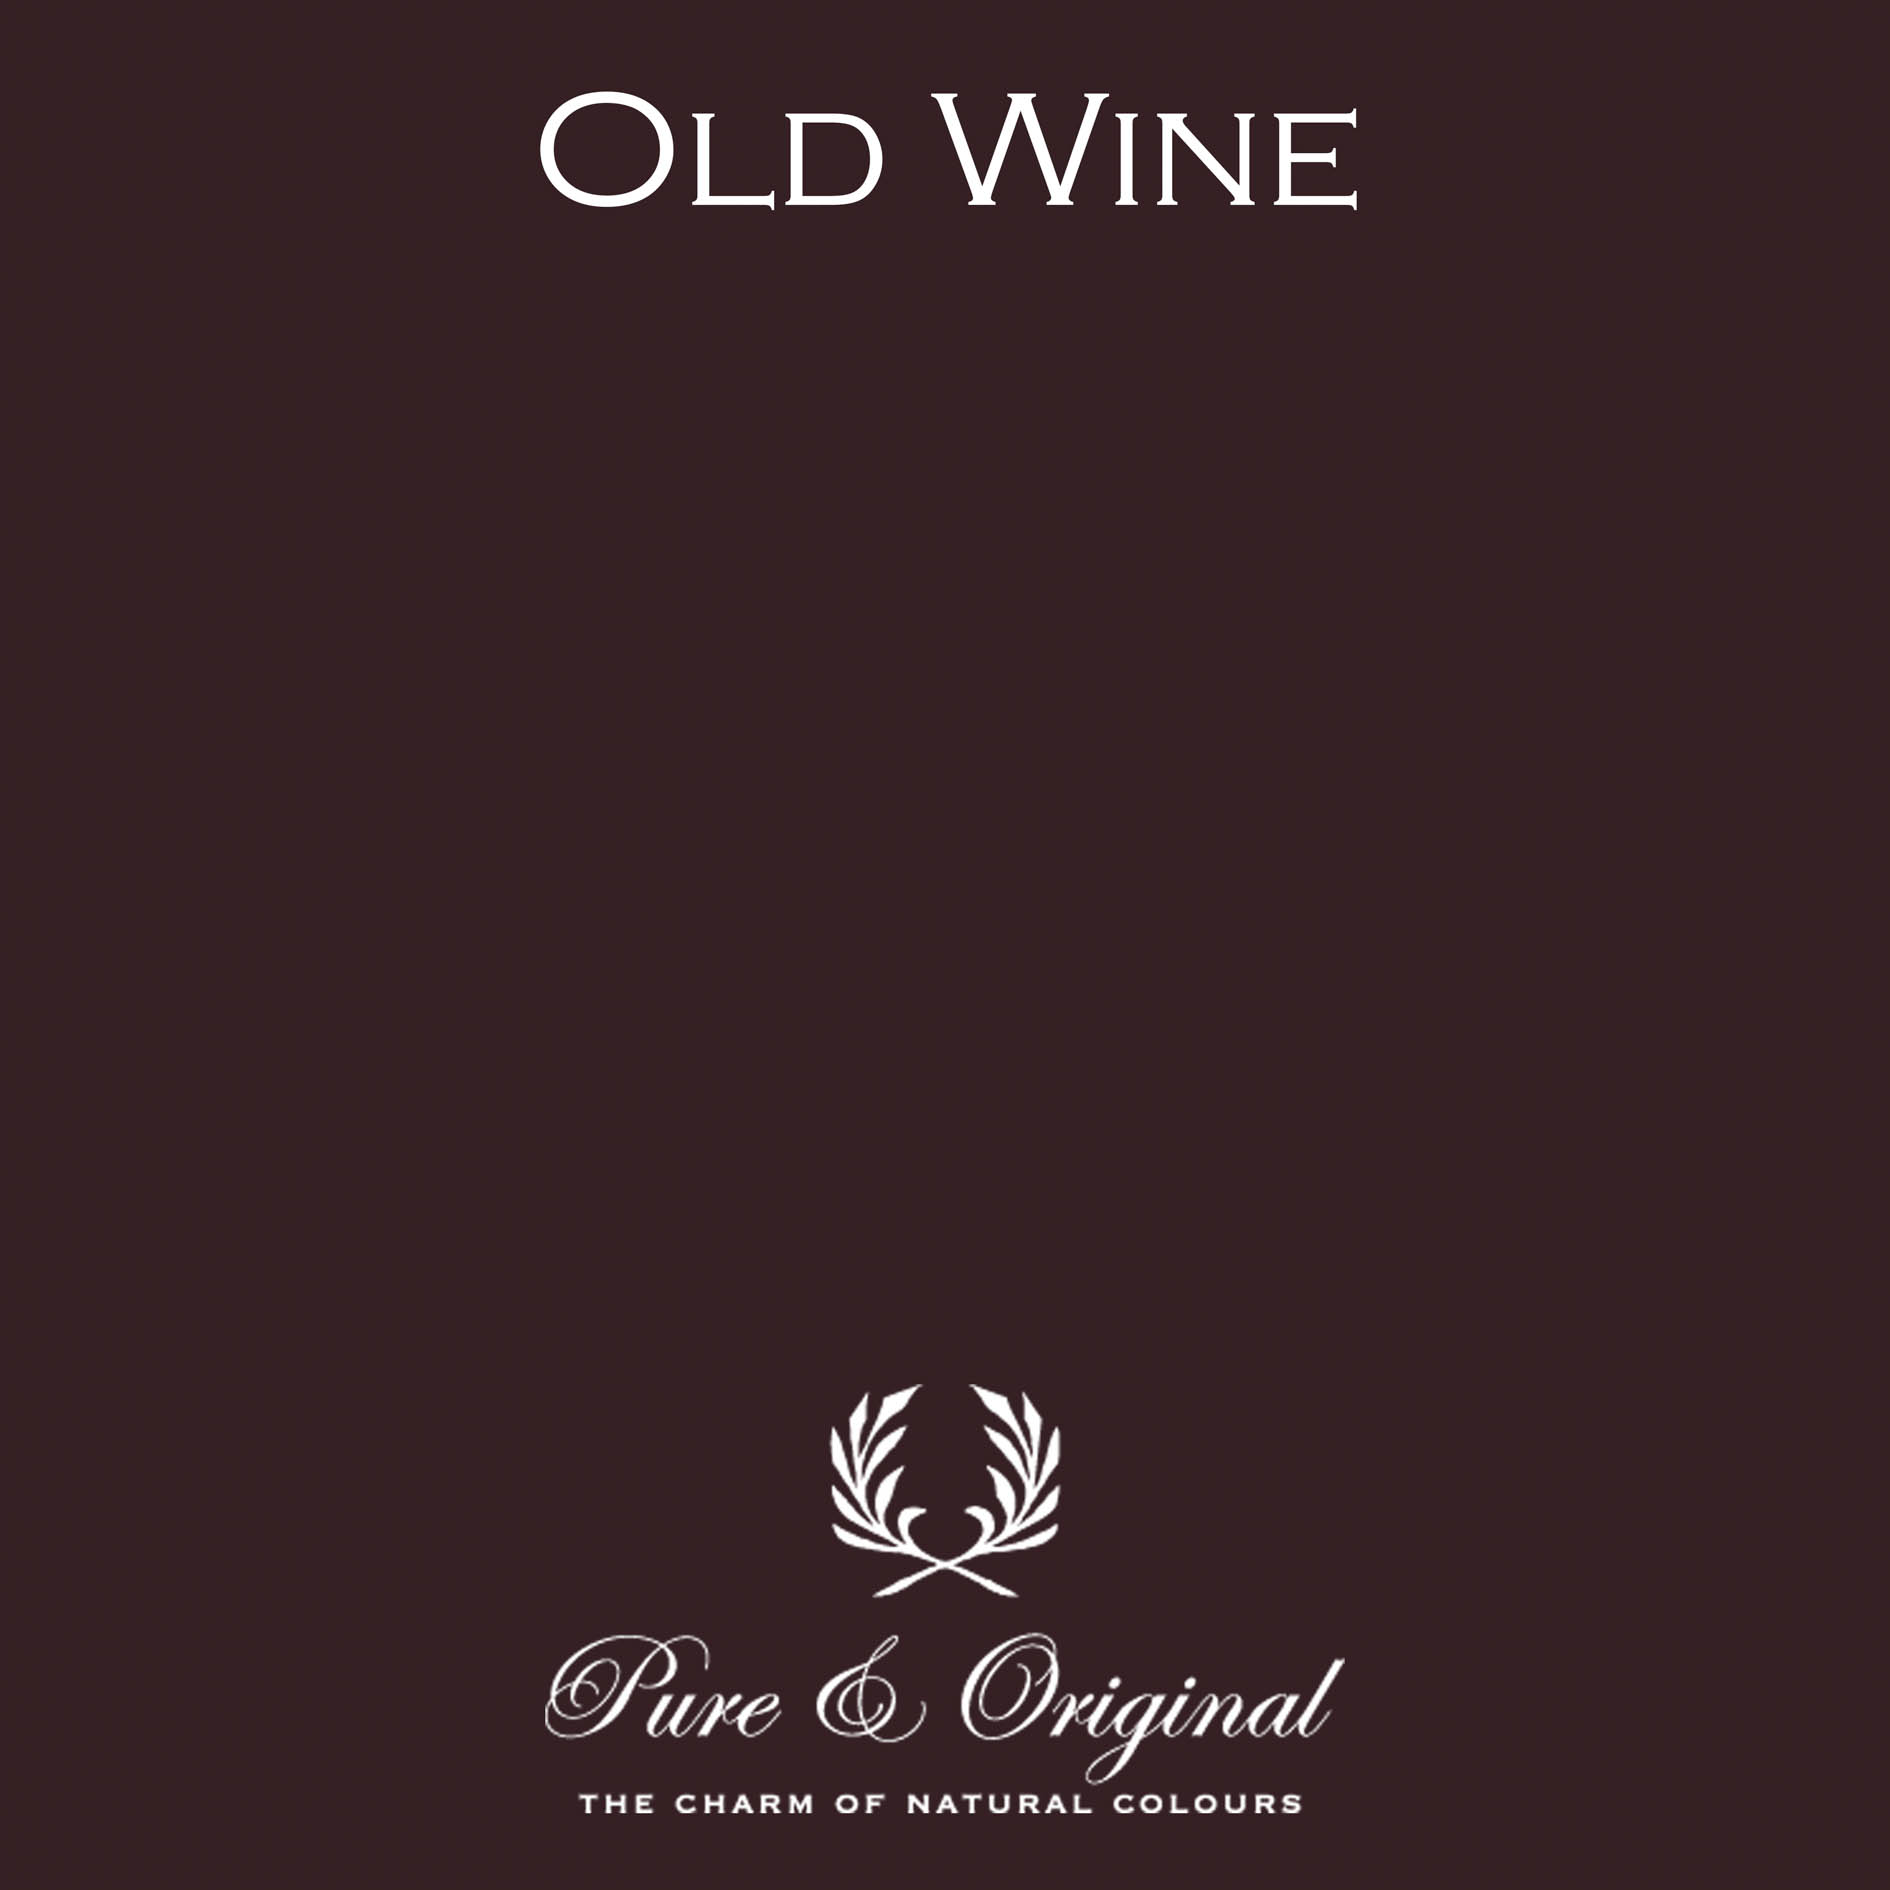 Pure & Original Old Wine